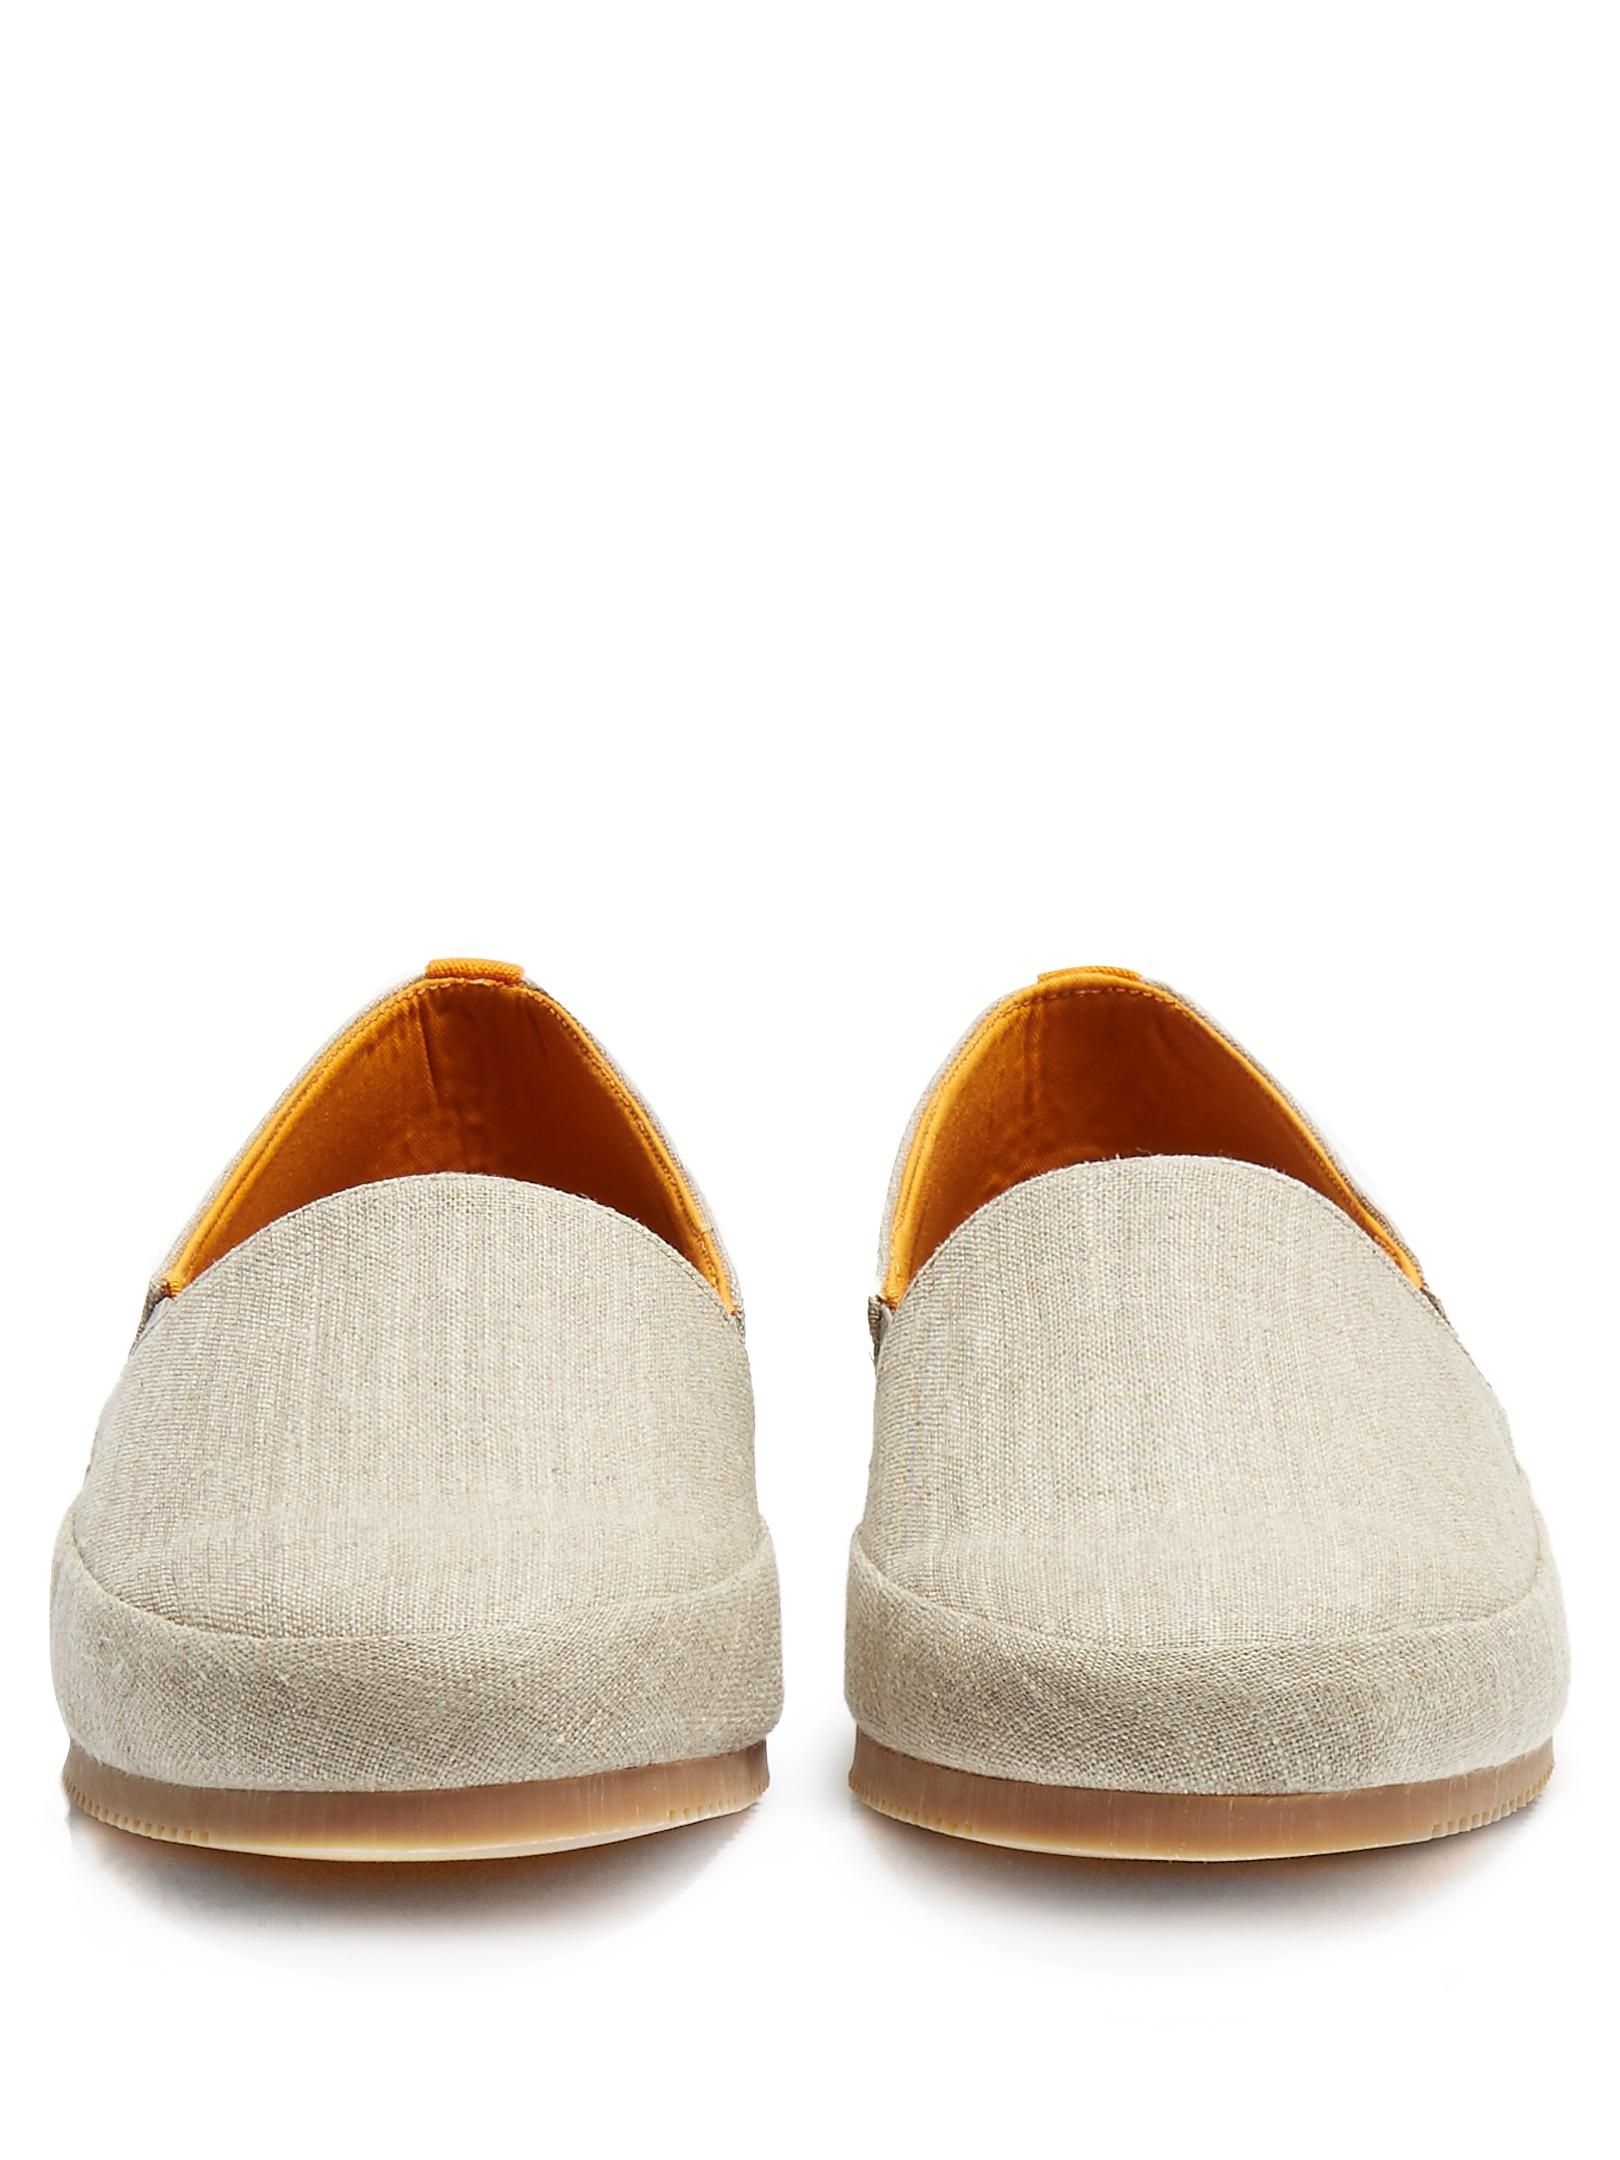 Mulo Linen Loafers in Beige (Natural) for Men